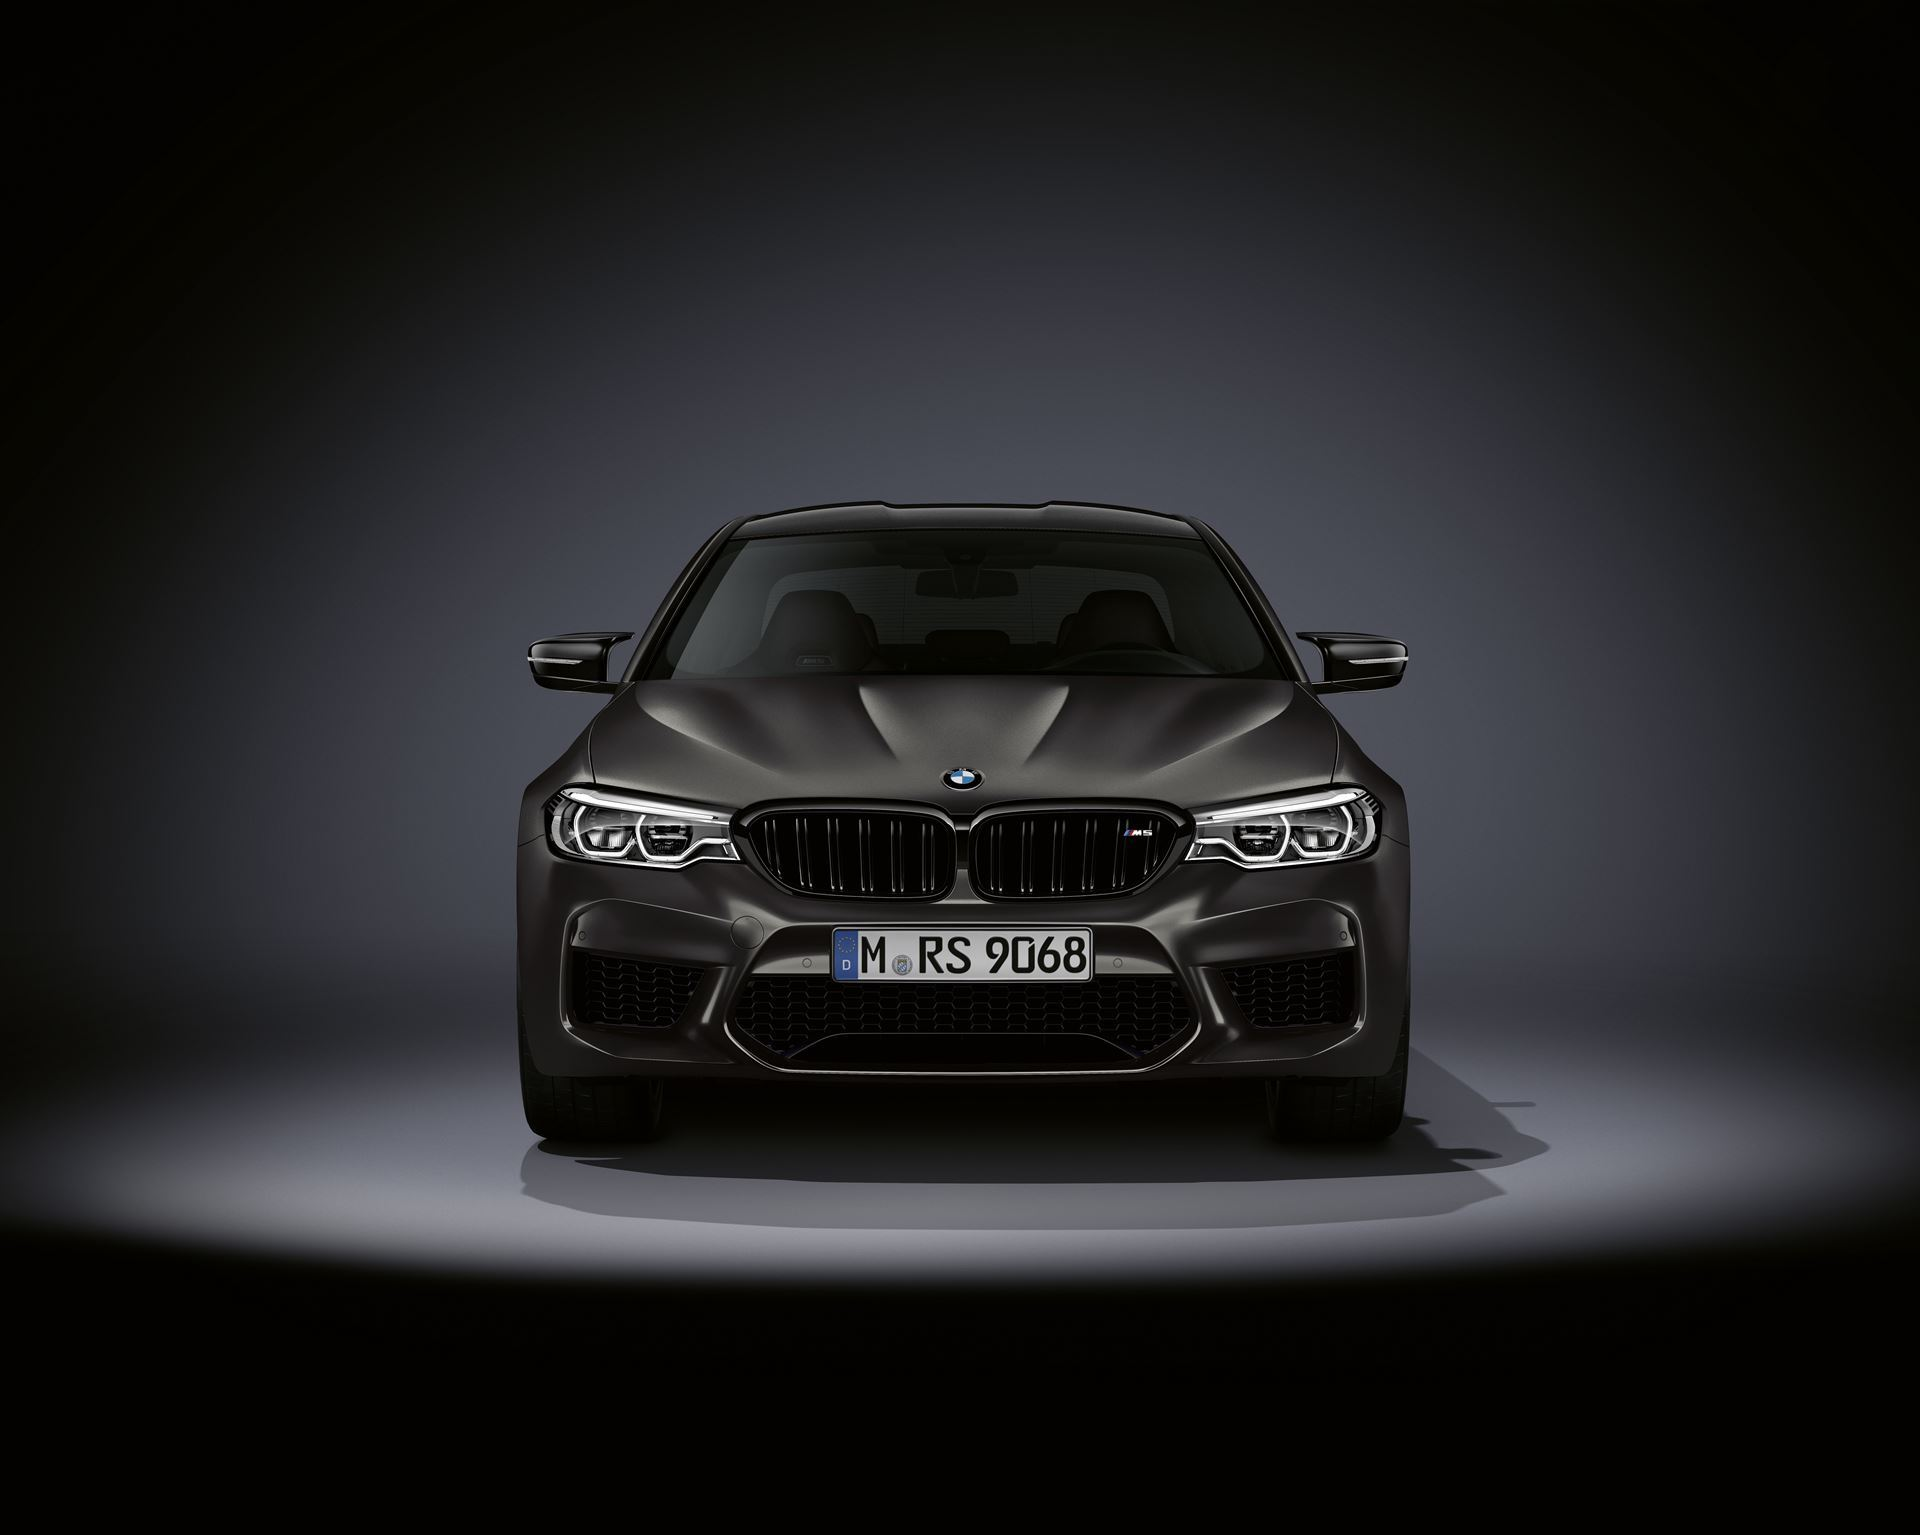 hight resolution of 35 years ago bmw motorsport gmbh created a new vehicle category the first high performance sedan combined the driving dynamics of a sports car with the